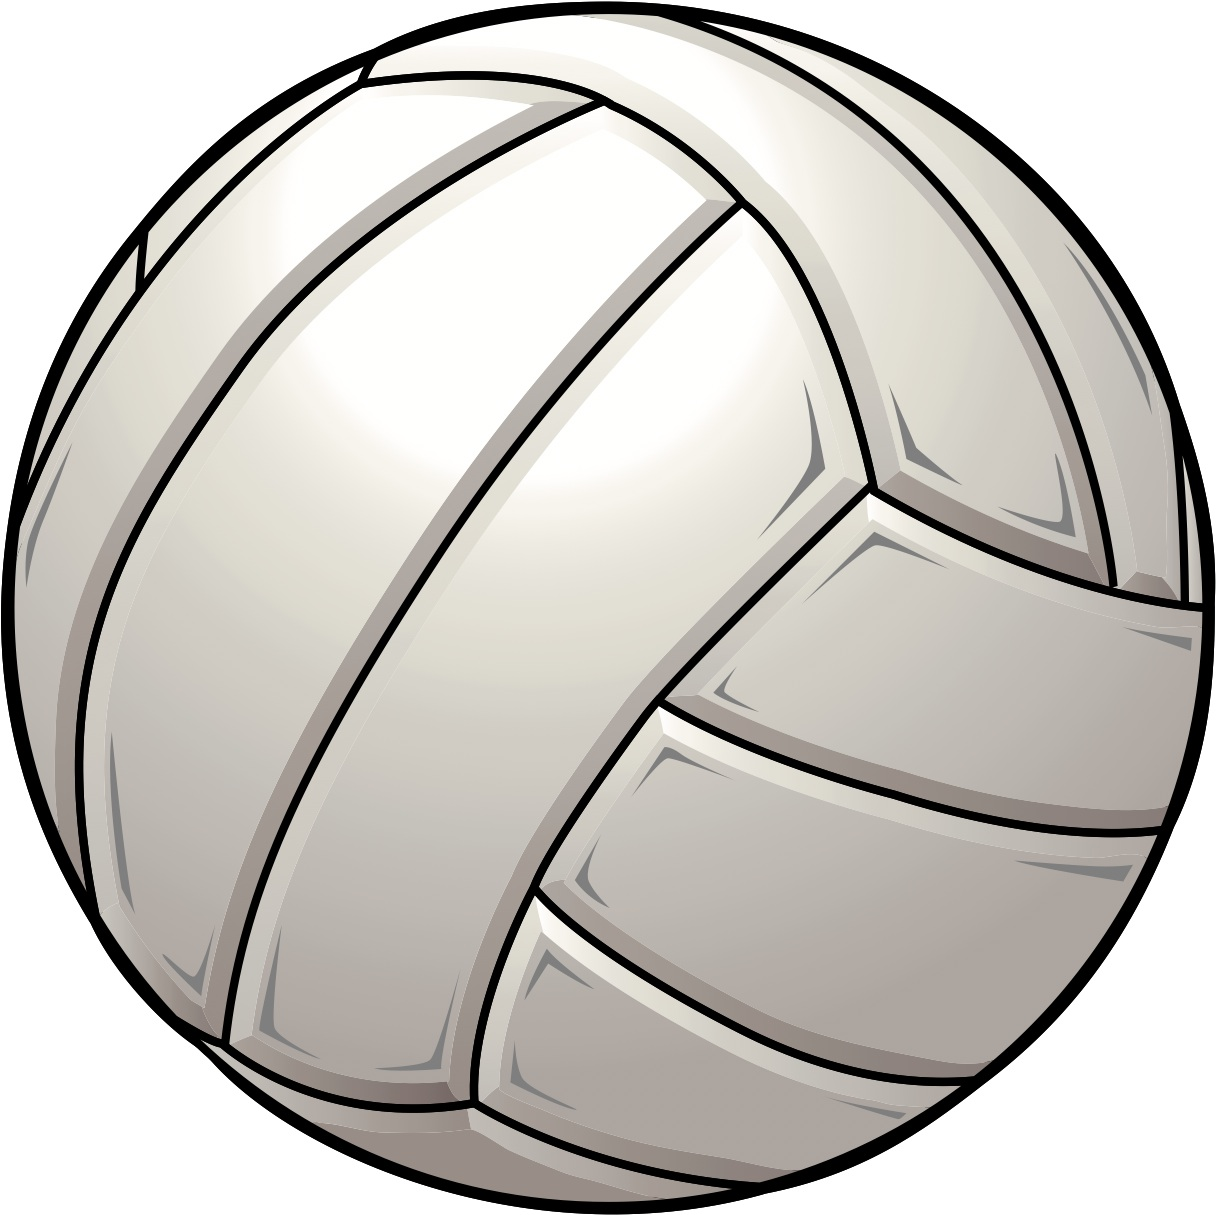 1217x1215 Volleyball Clipart Transparent Background Amp Volleyball Clip Art